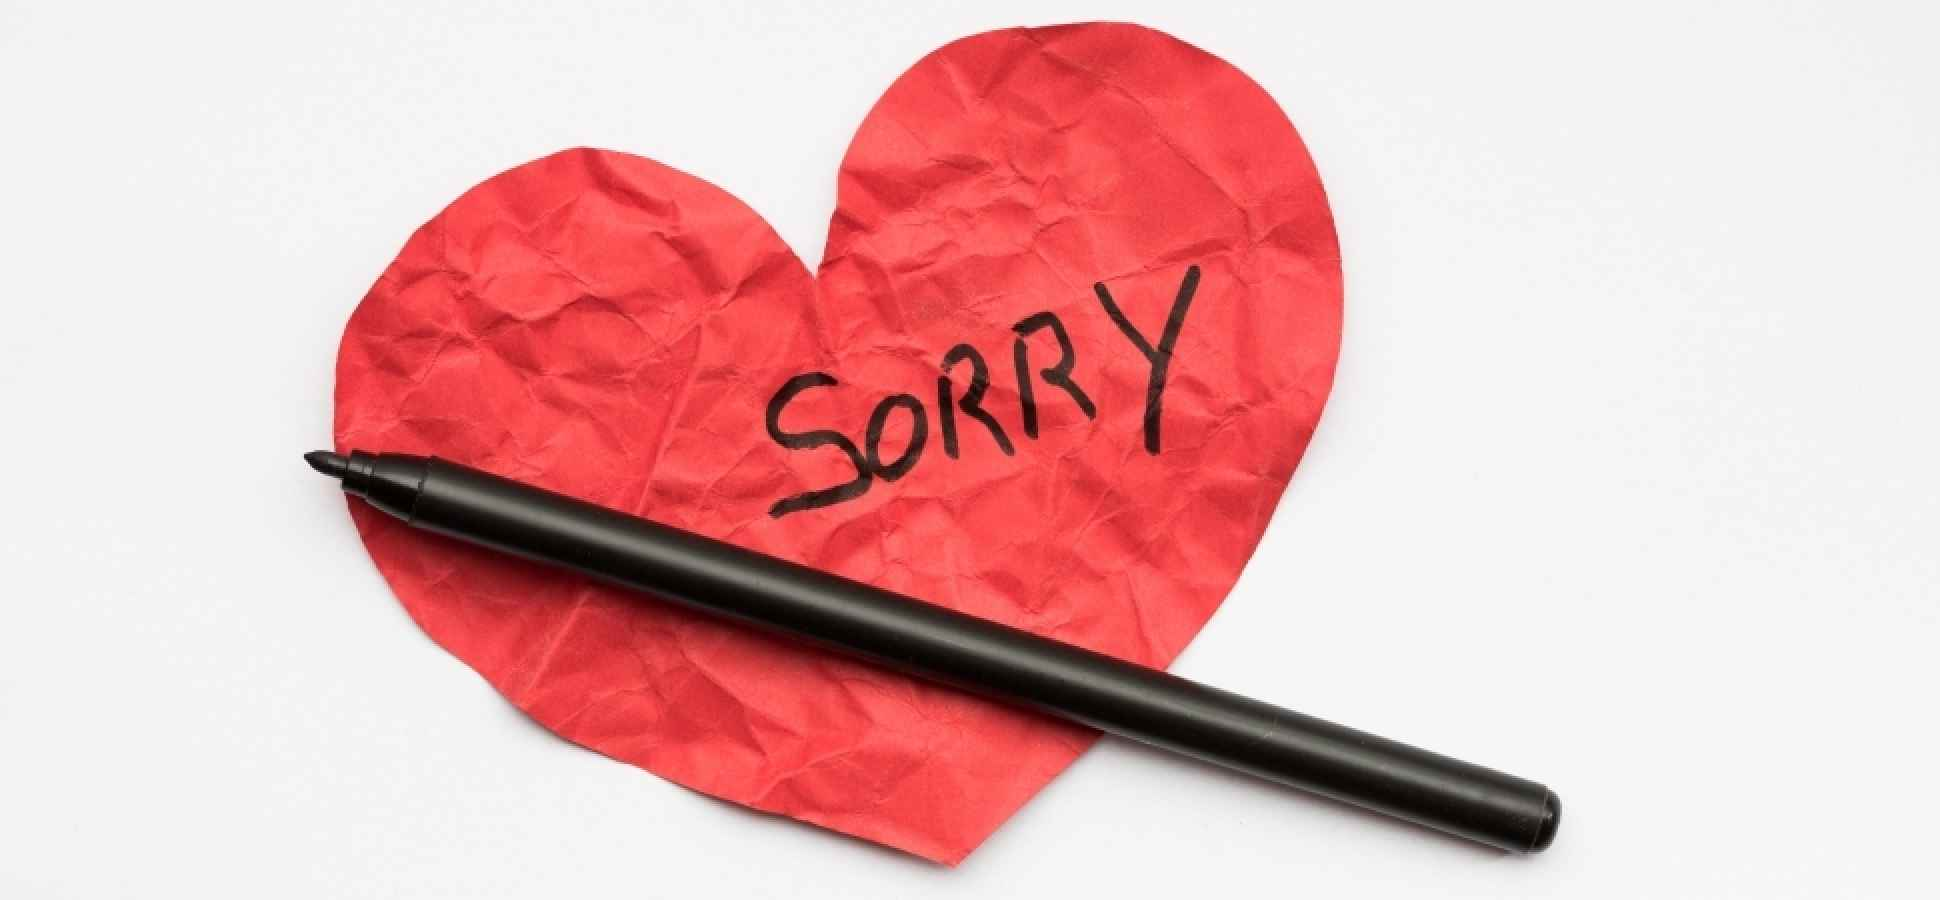 Use These Expert Tips For Apologies, So You All Can Move On  Inc